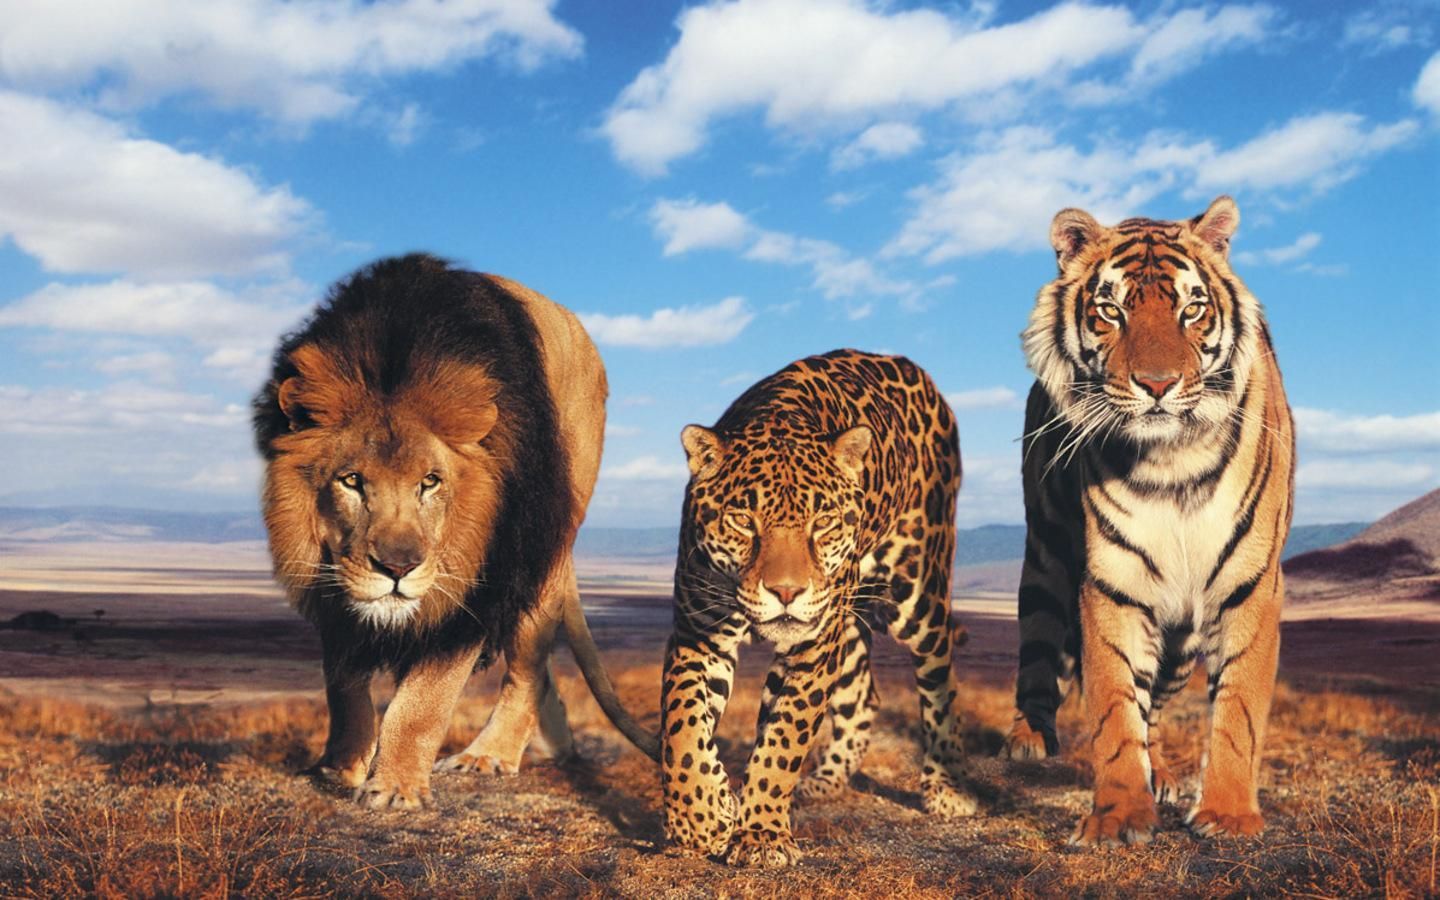 Glowing Lion and Tiger HD desktop wallpaper : High Definition : Mobile | Images Wallpapers ...